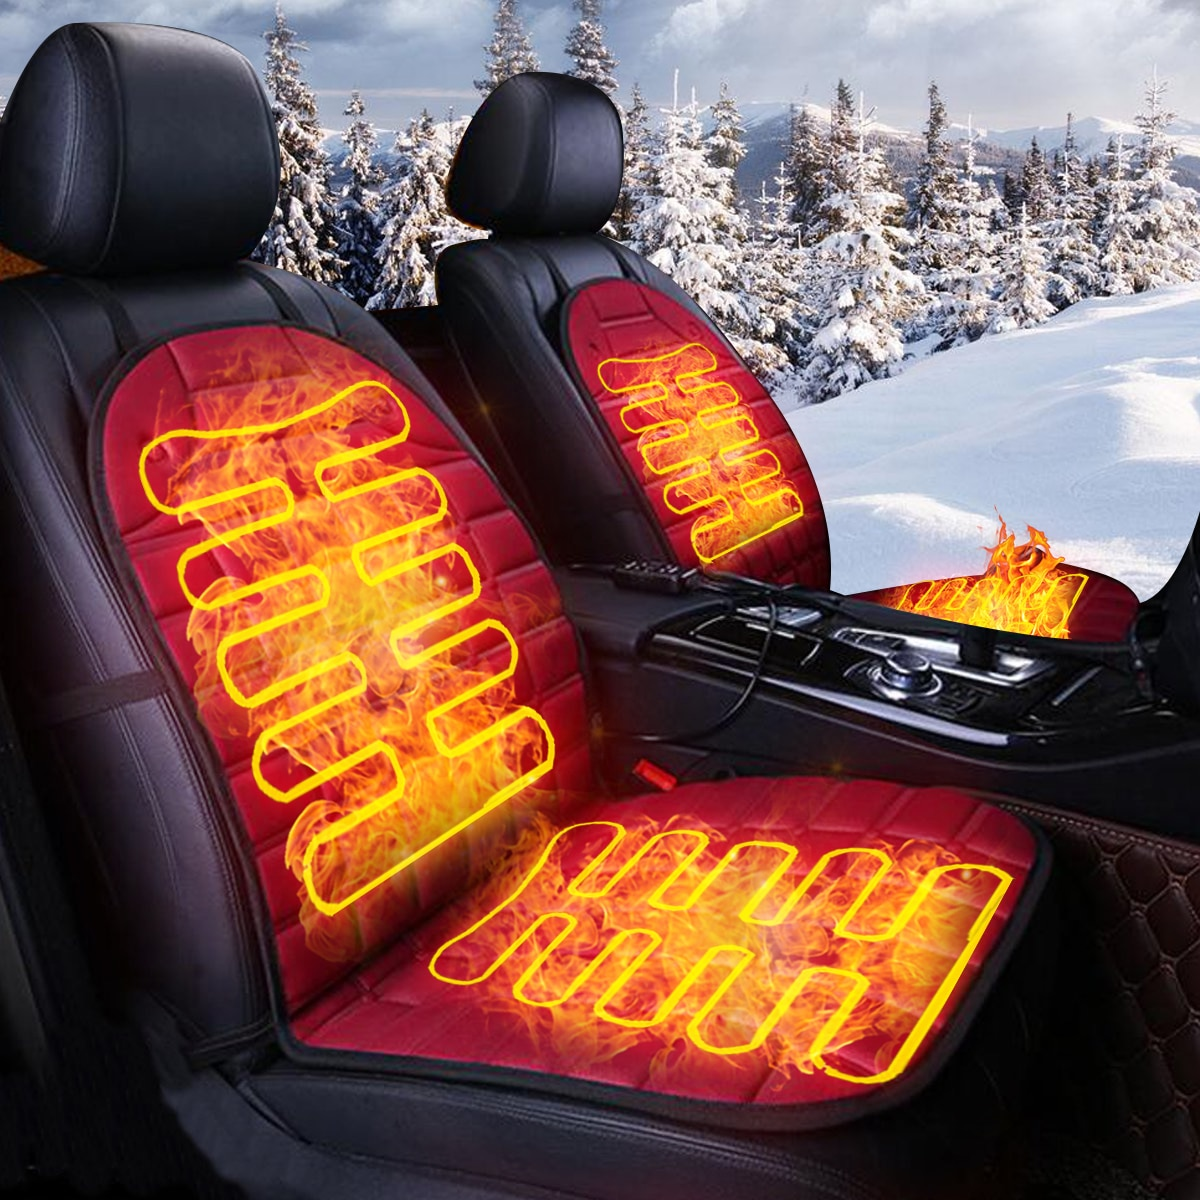 (For USA only) 2Pcs In 1 Fast Heated & Adjustable Black/Grey/Blue/Red Car Electric Heated Seat Car Styling Winter Pad Cushions Auto Covers